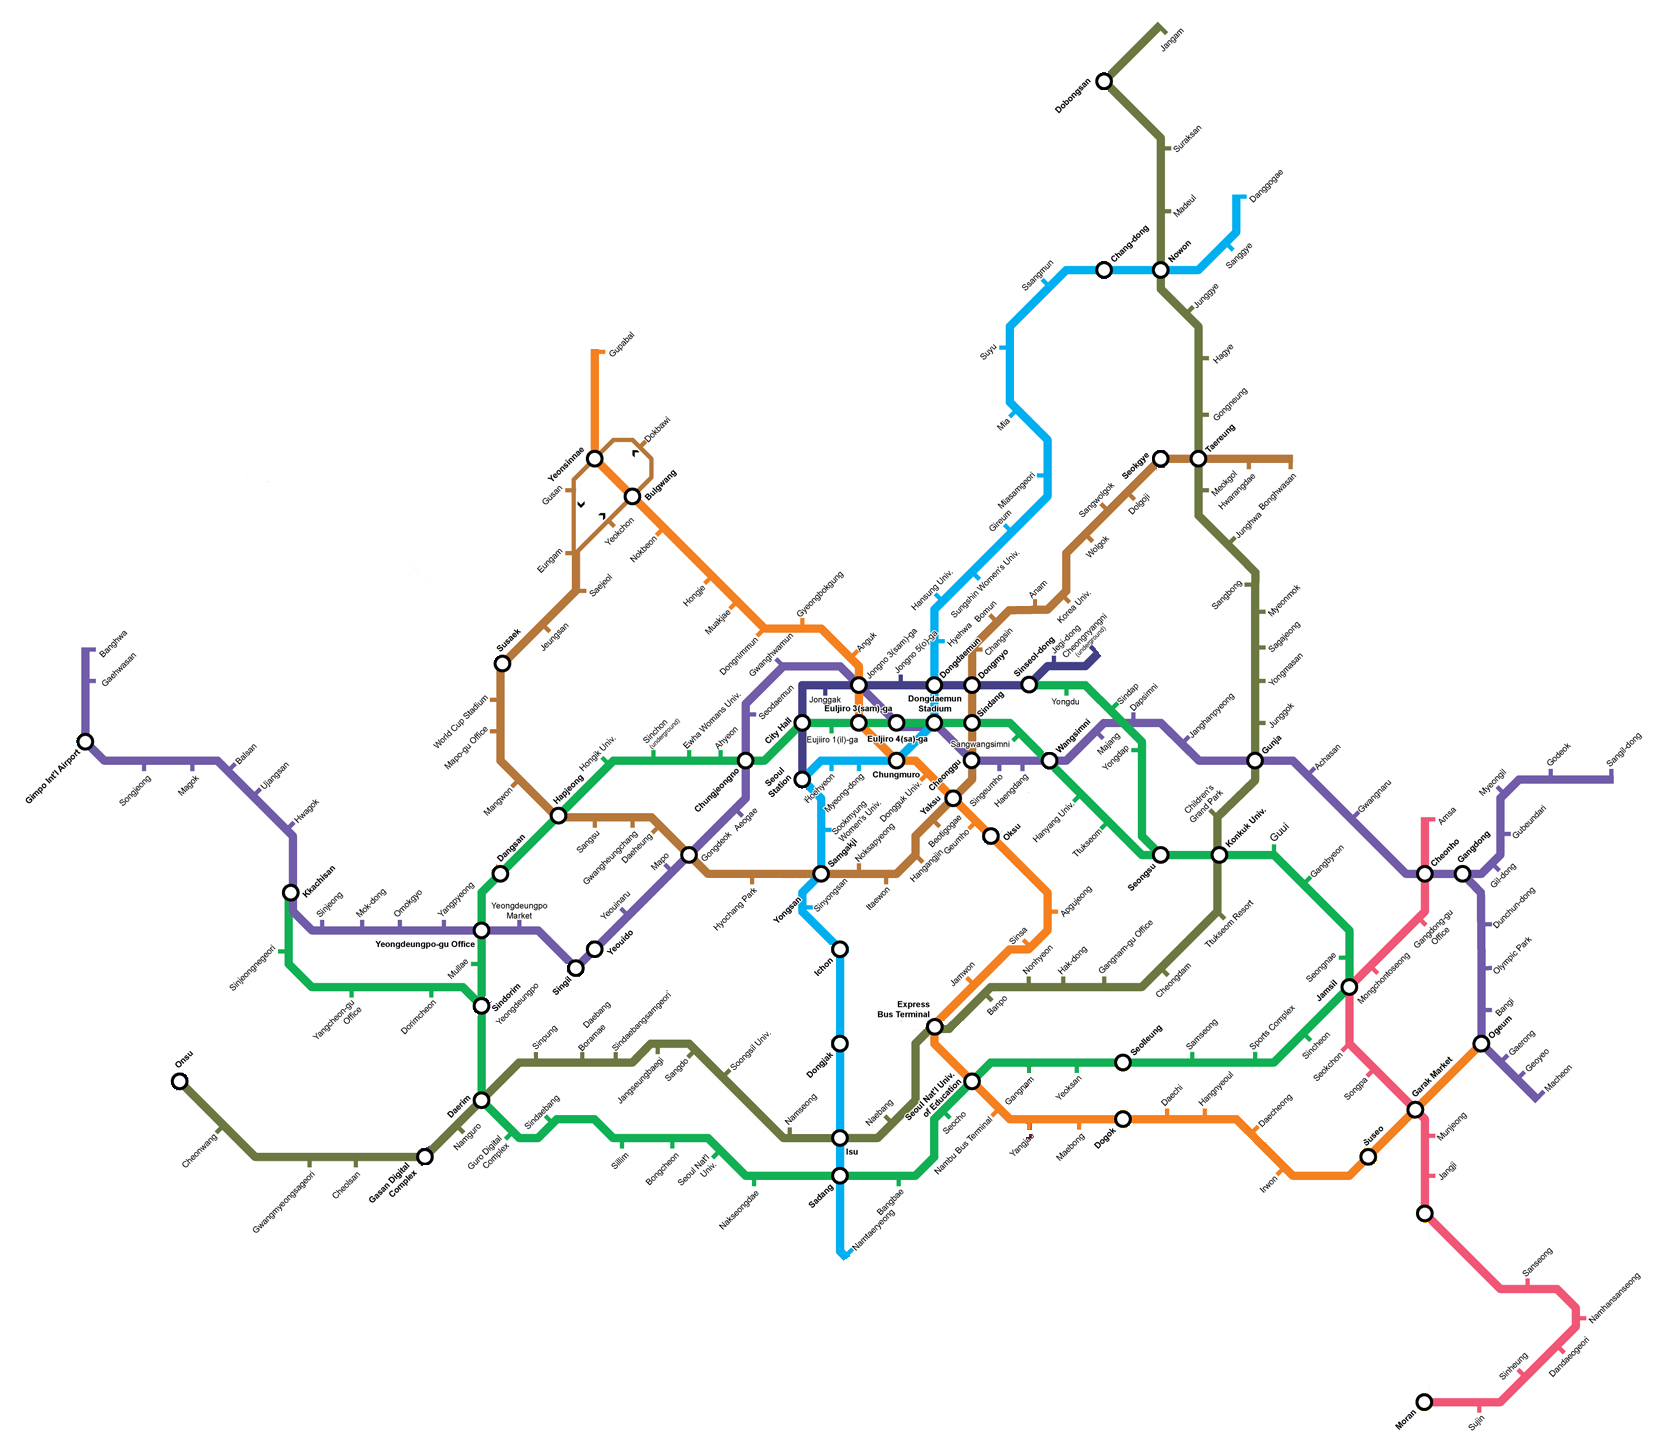 Eoul Subway Map.Seoul Subway Rapid Transit Wiki Fandom Powered By Wikia